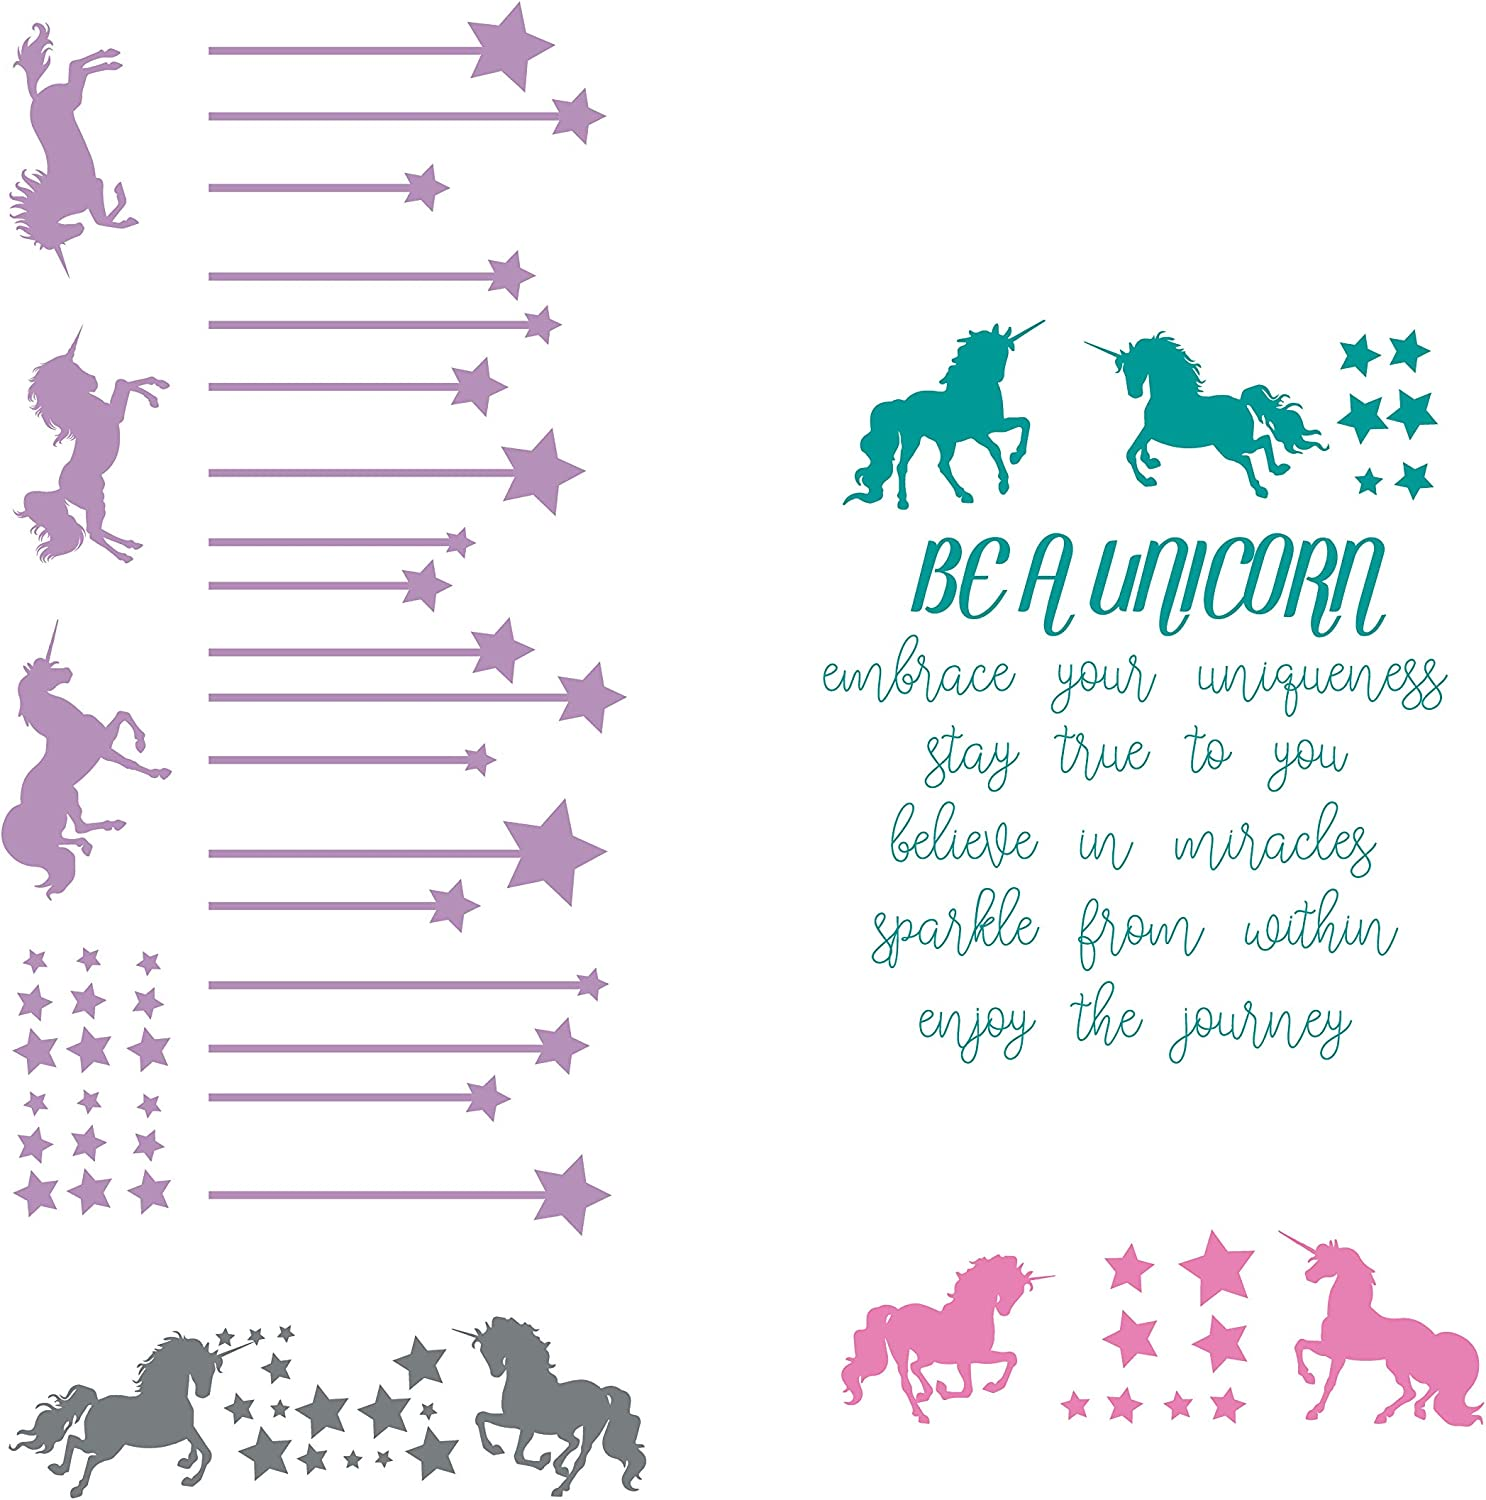 CustomVinylDecor Unicorn Full Wall Mural | Be a Unicorn, Embrace Your Uniqueness, Stay True to You, Believe in Miracles Quote with Unicorns and Stars Home Decor Sticker for Girls